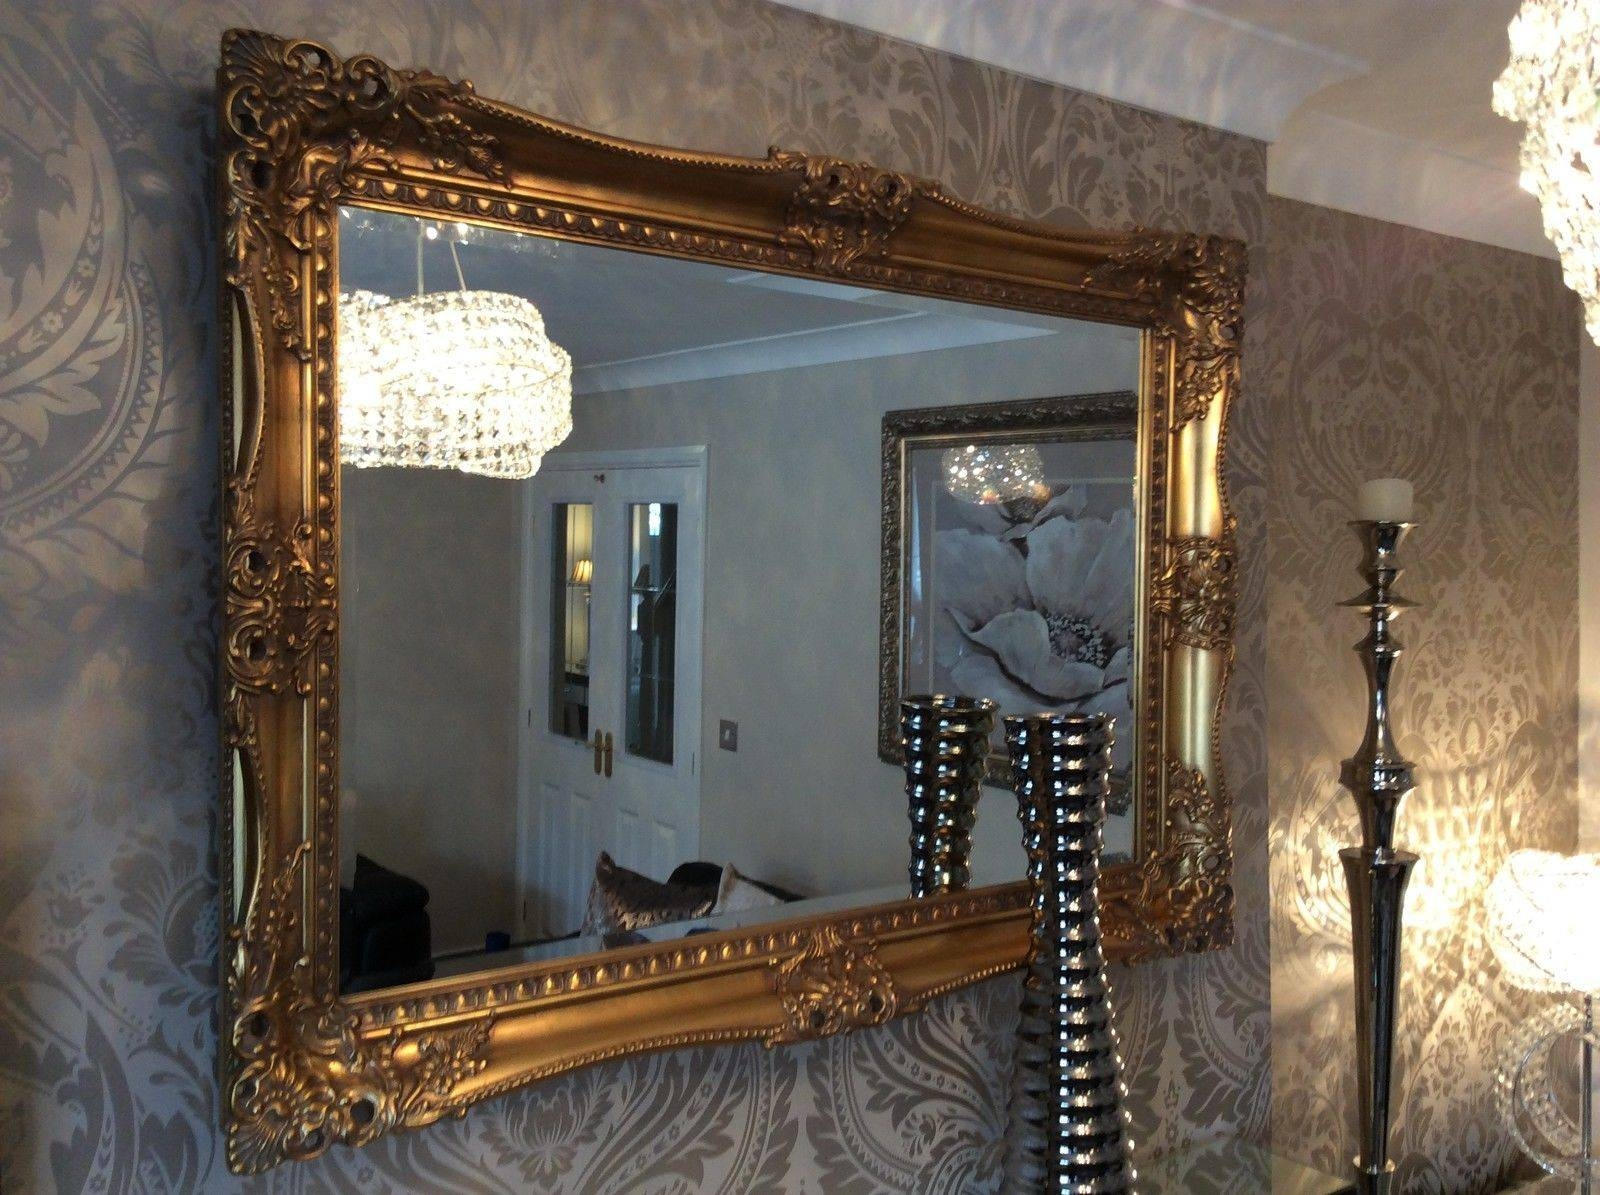 Gold Shabby Chic Ornate Decorative Carved Wall Mirror 37.5 X (View 3 of 15)